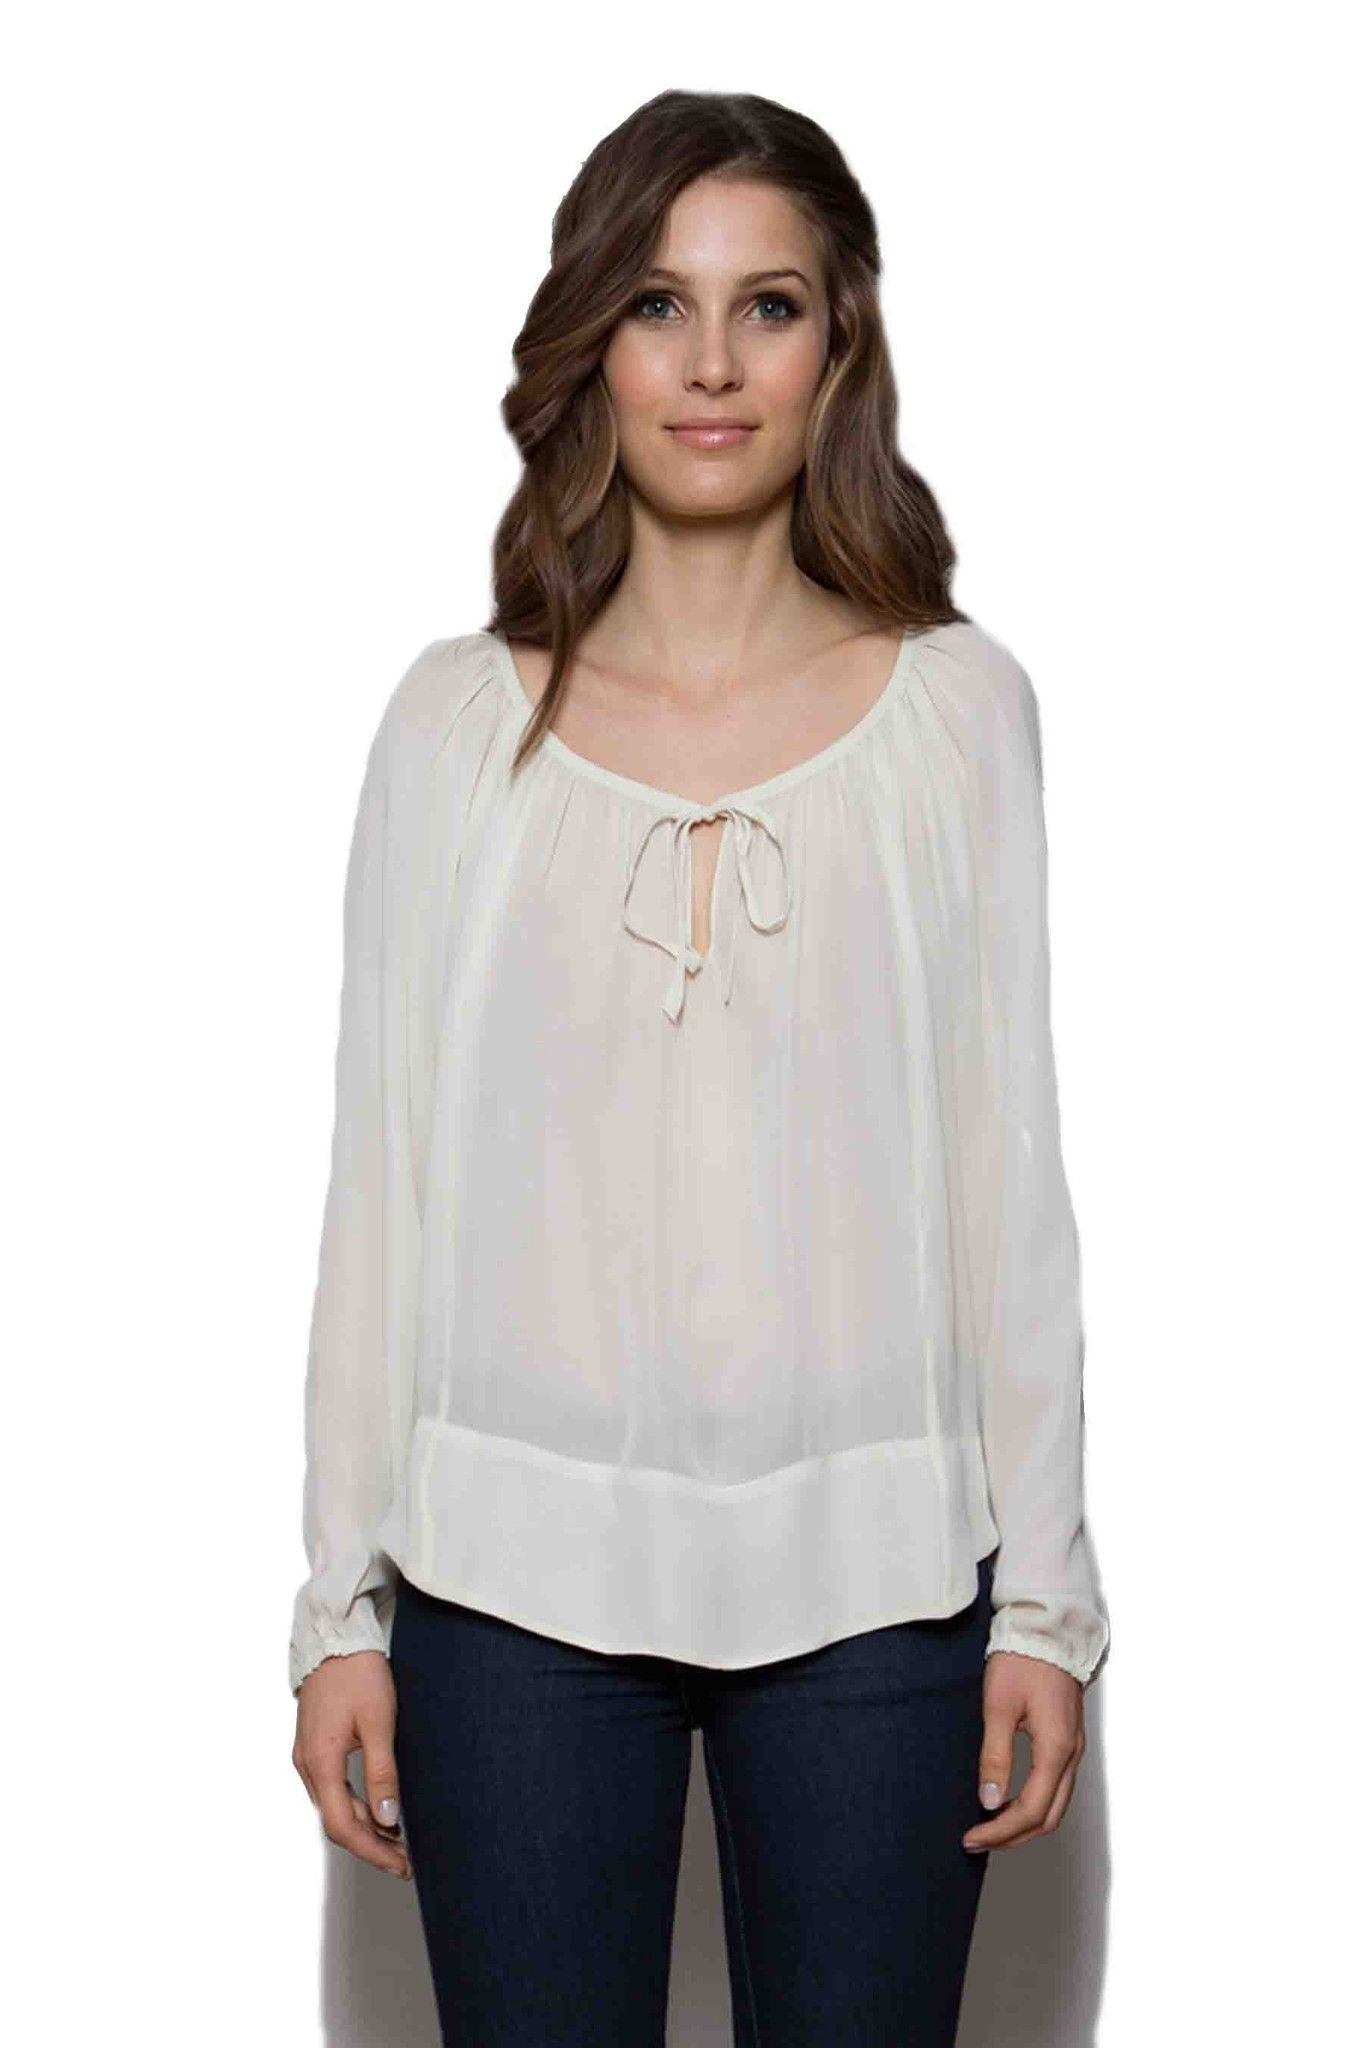 T205 LONG SLEEVE BLOUSE IN DBL GGT ANTIQUE WHITE